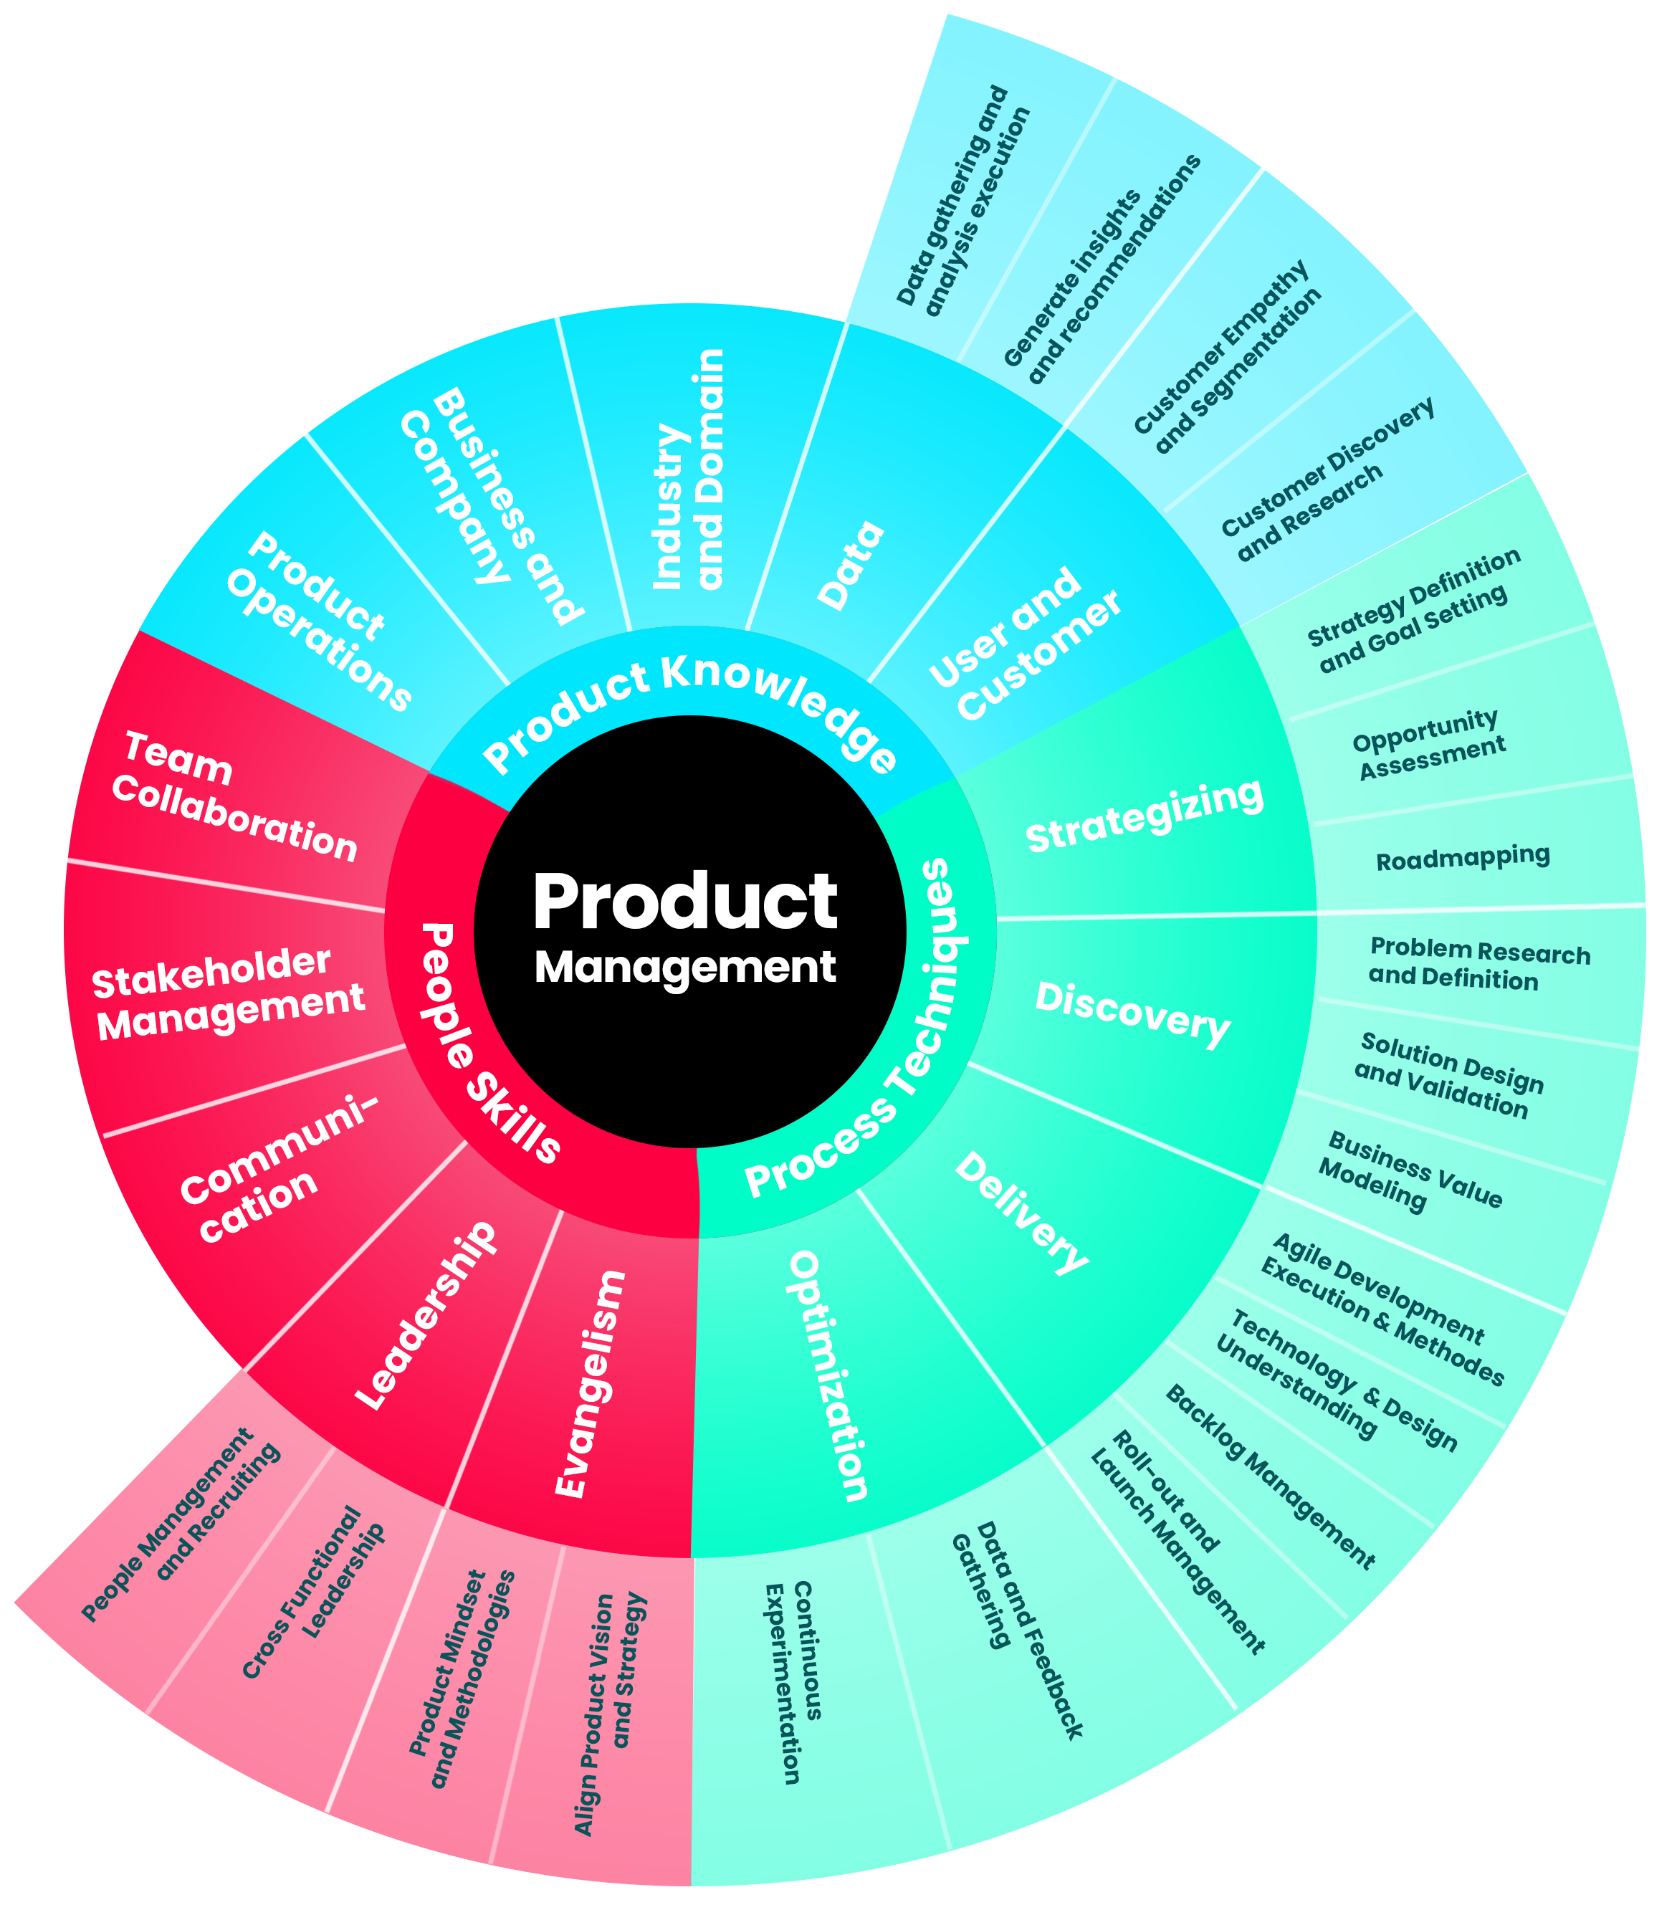 Decoding Product Management—A skill matrix to grow, coach, assess and hire world-class PMs